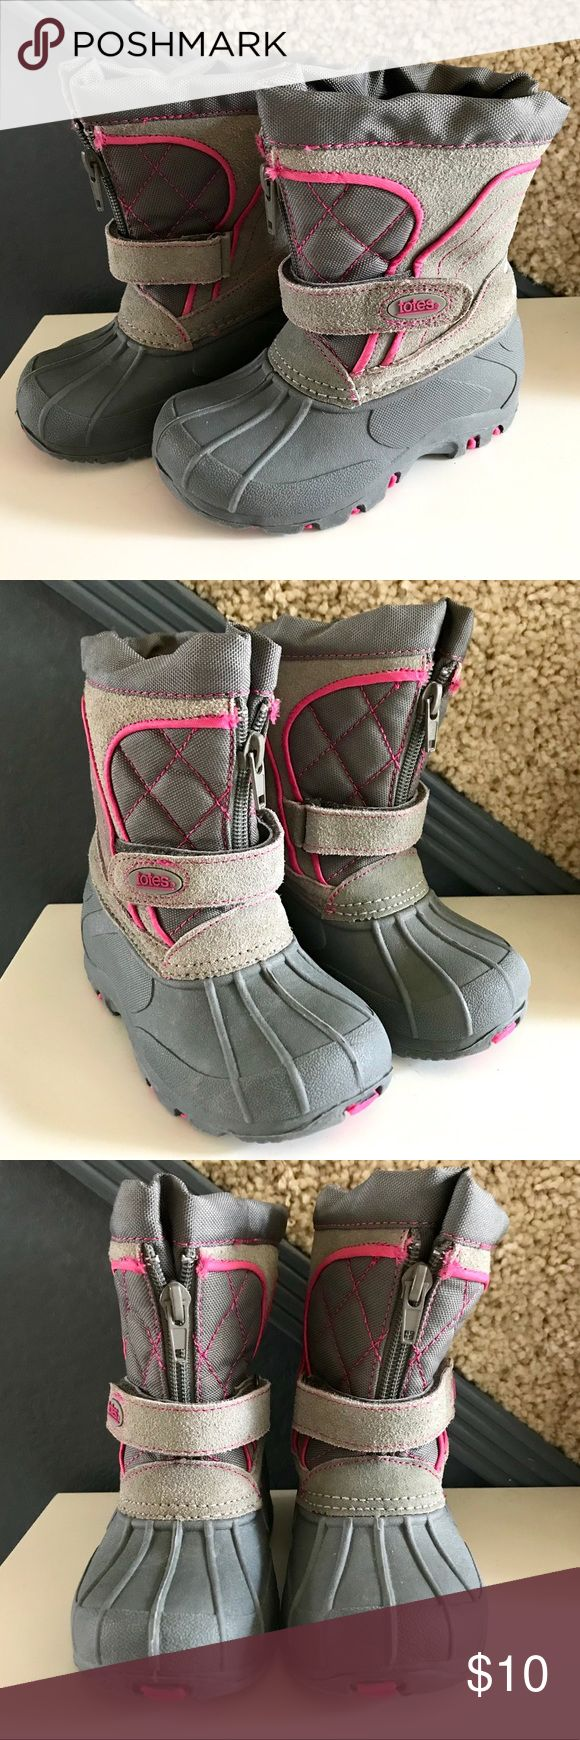 Totes Toddler Girl Grey Pink Snow Boots Adorable & functional toddler girl snow boots. These kept my daughter's feet completely dry & warm in 25-30 degree weather. Worn for a week in the snow last season. Great condition! Totes Shoes Rain & Snow Boots #toddlersnowbootsgirl